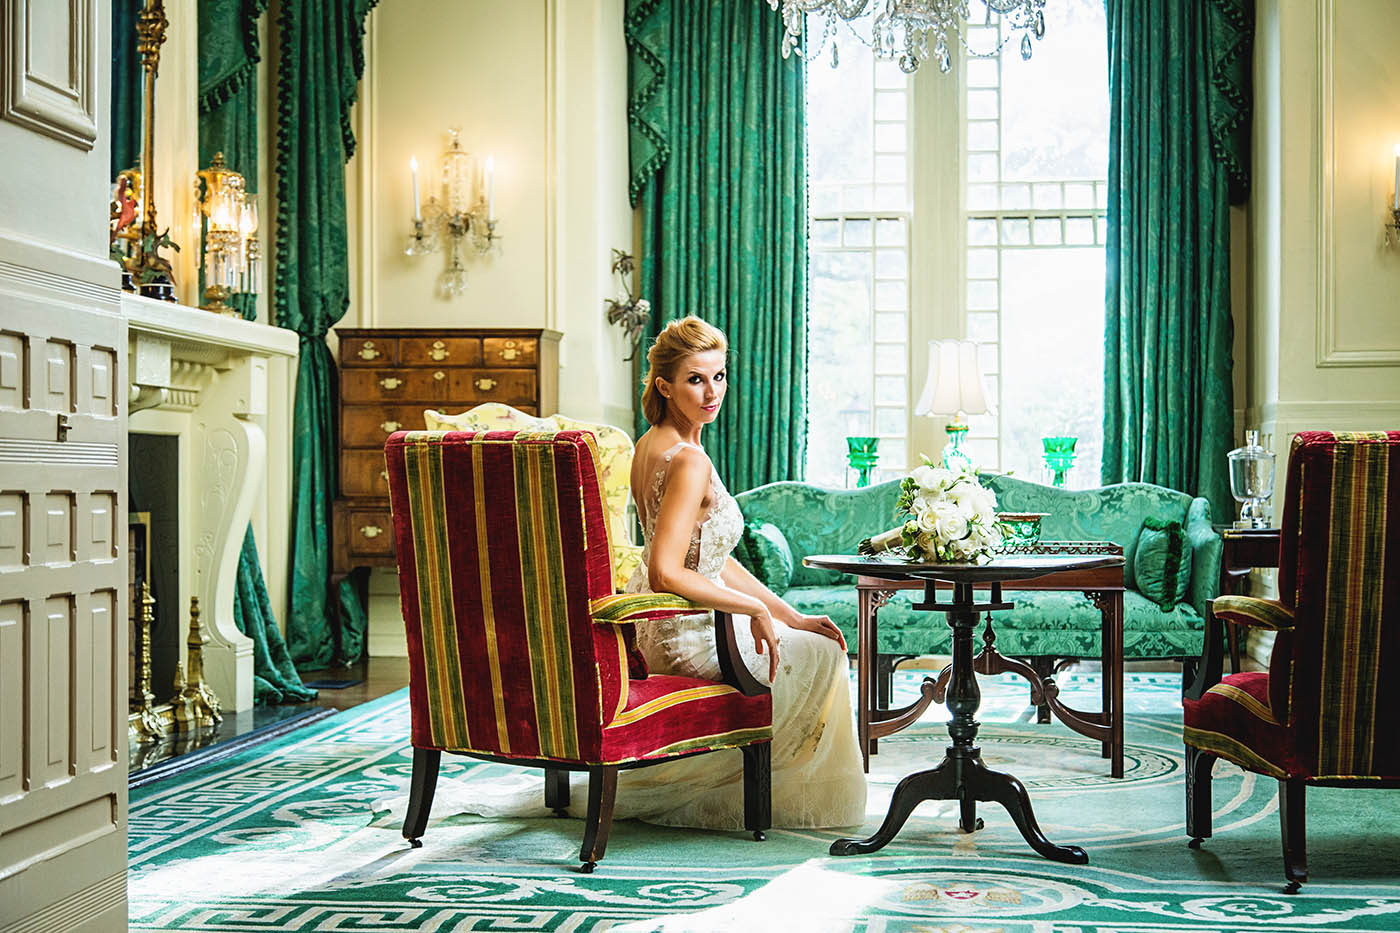 A photo taken during a fashion shoot at the NC governors mansion.